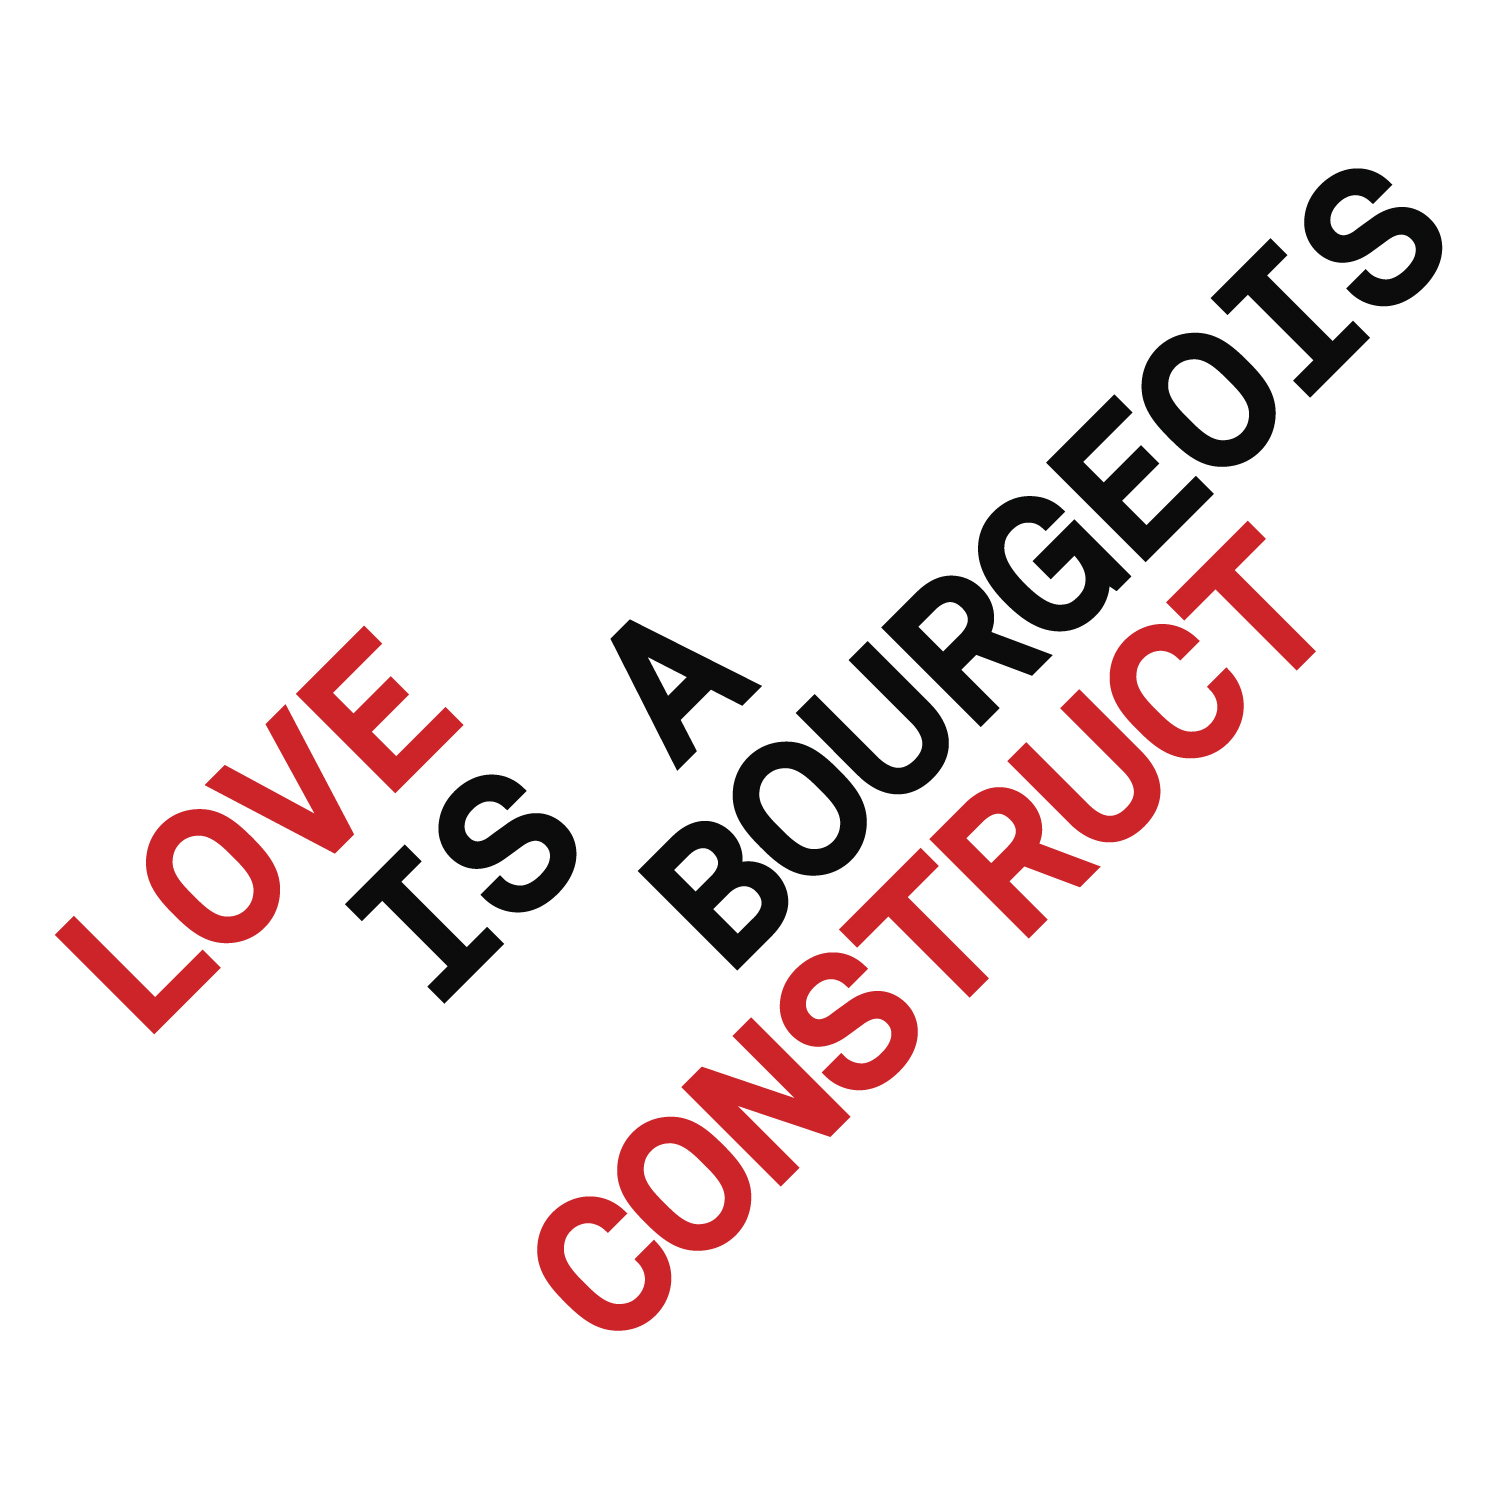 Love is a bourgeois construct